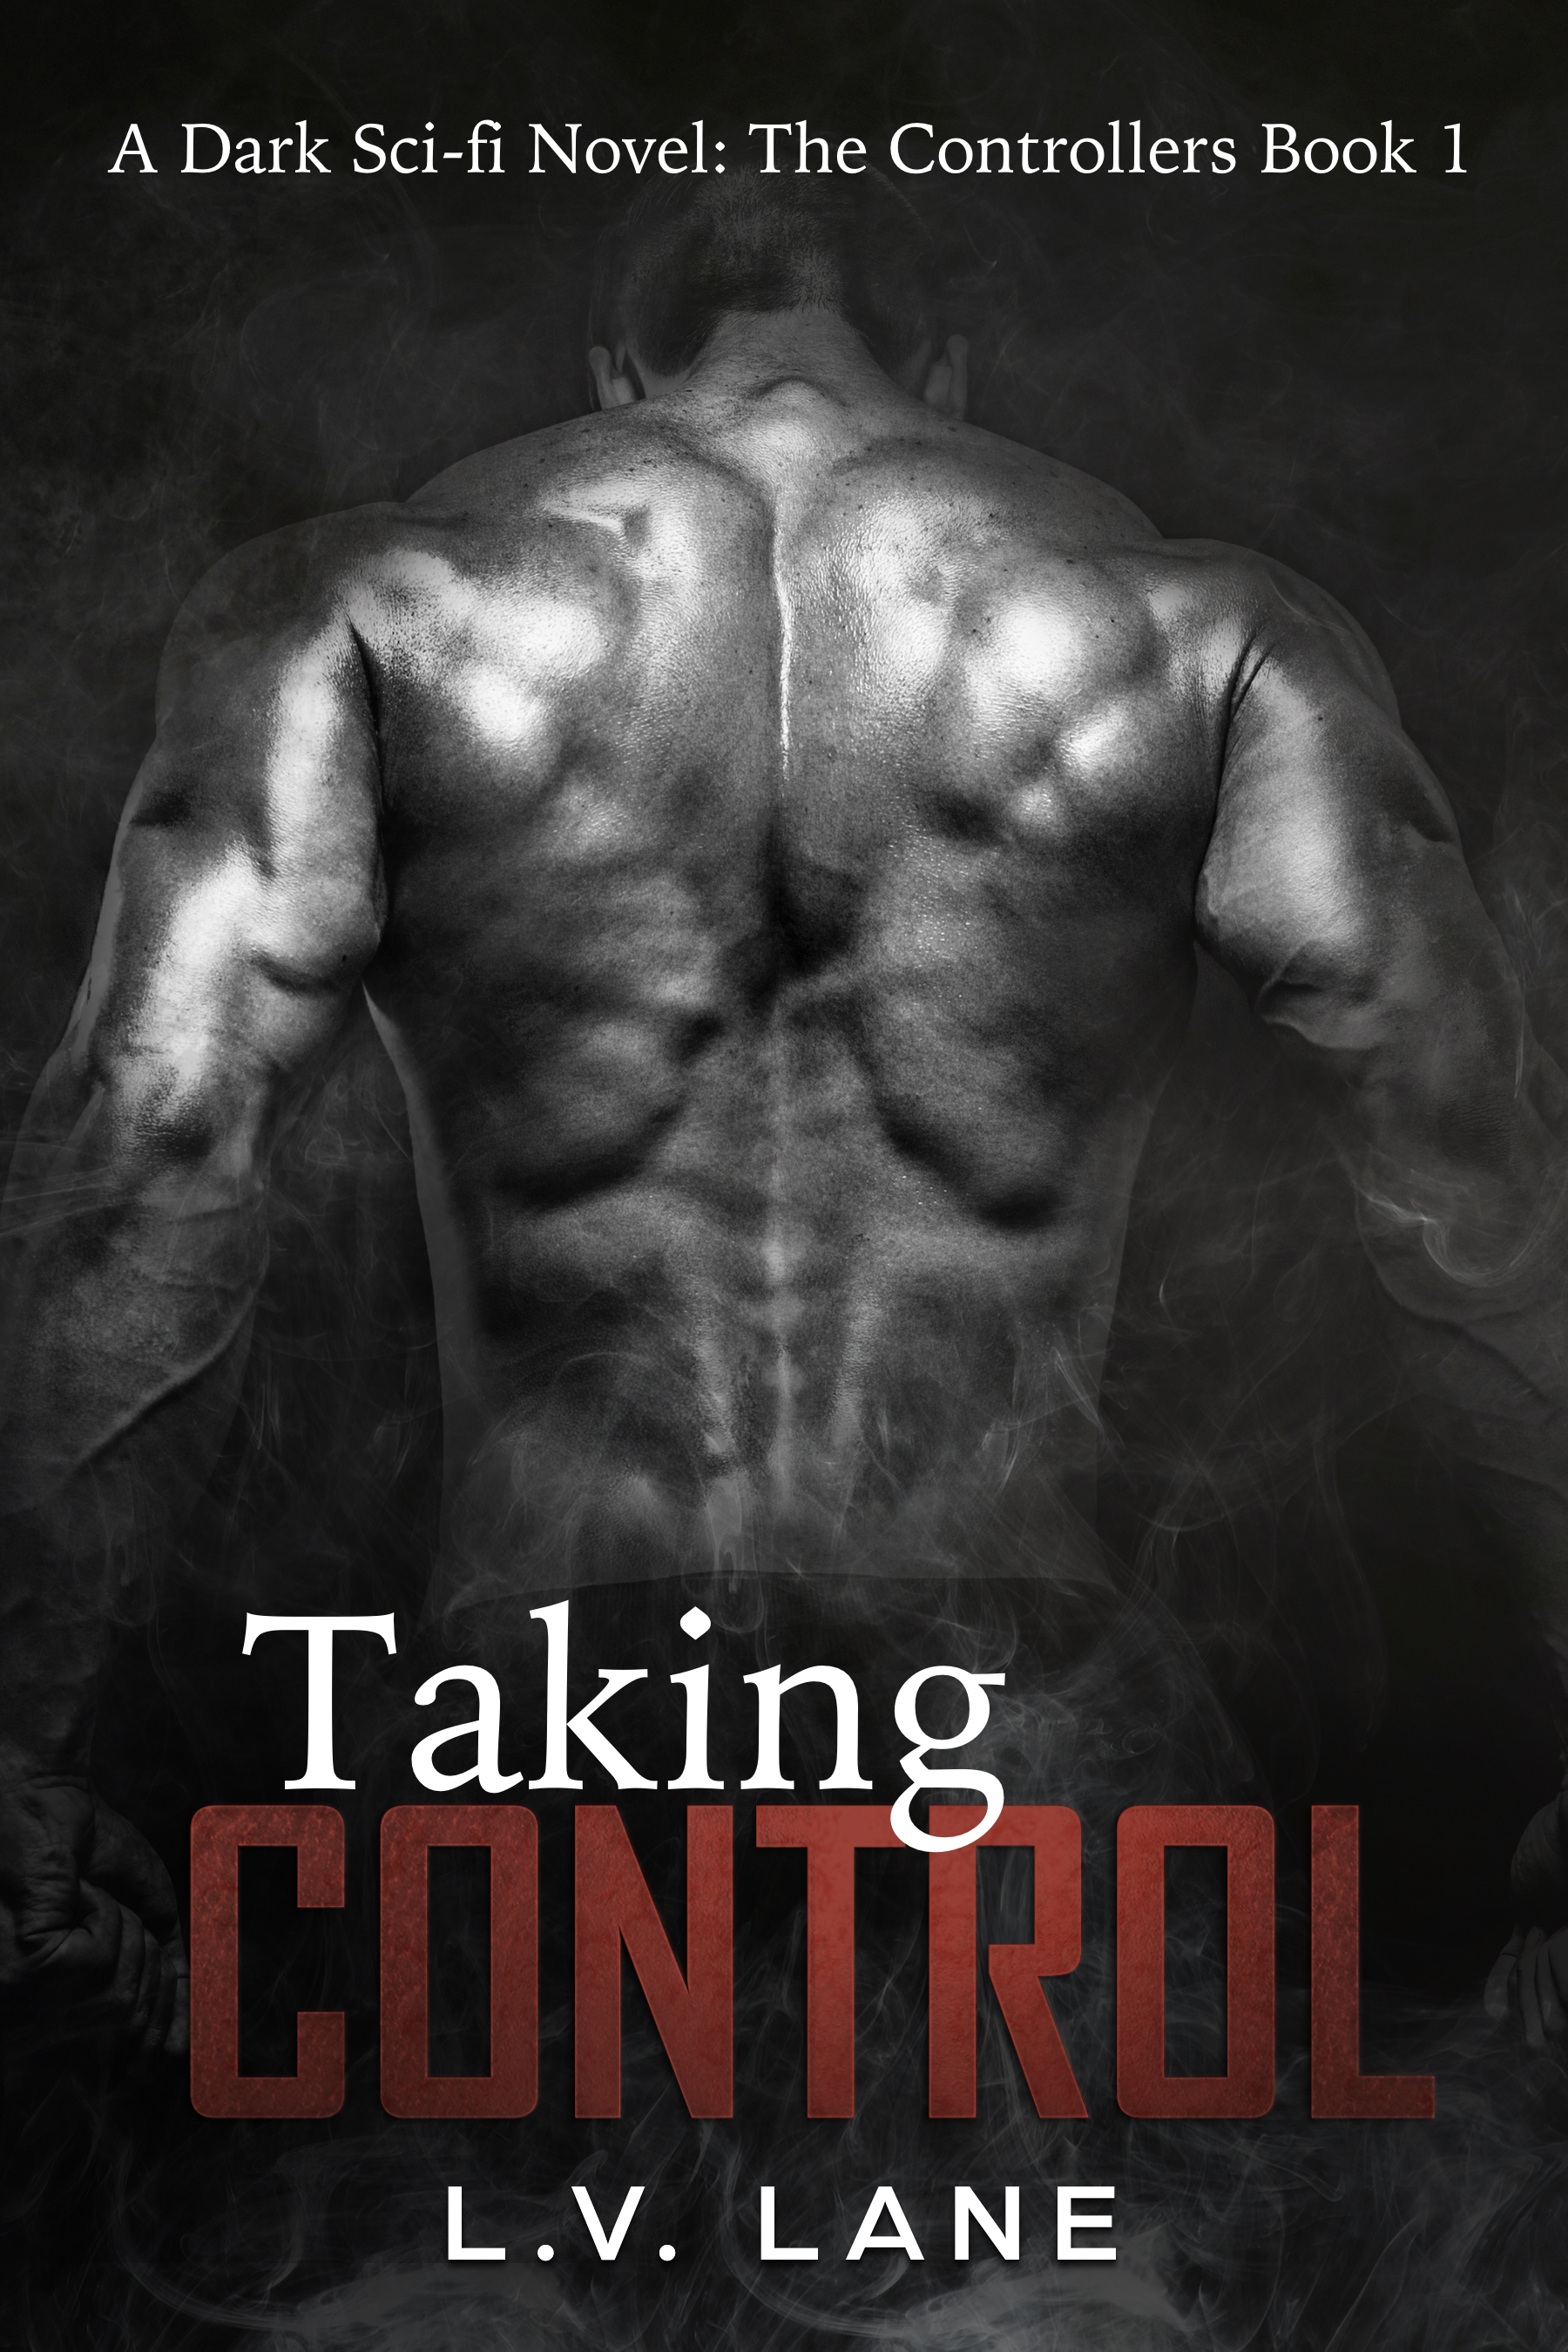 Taking Control: The Controllers Book 1